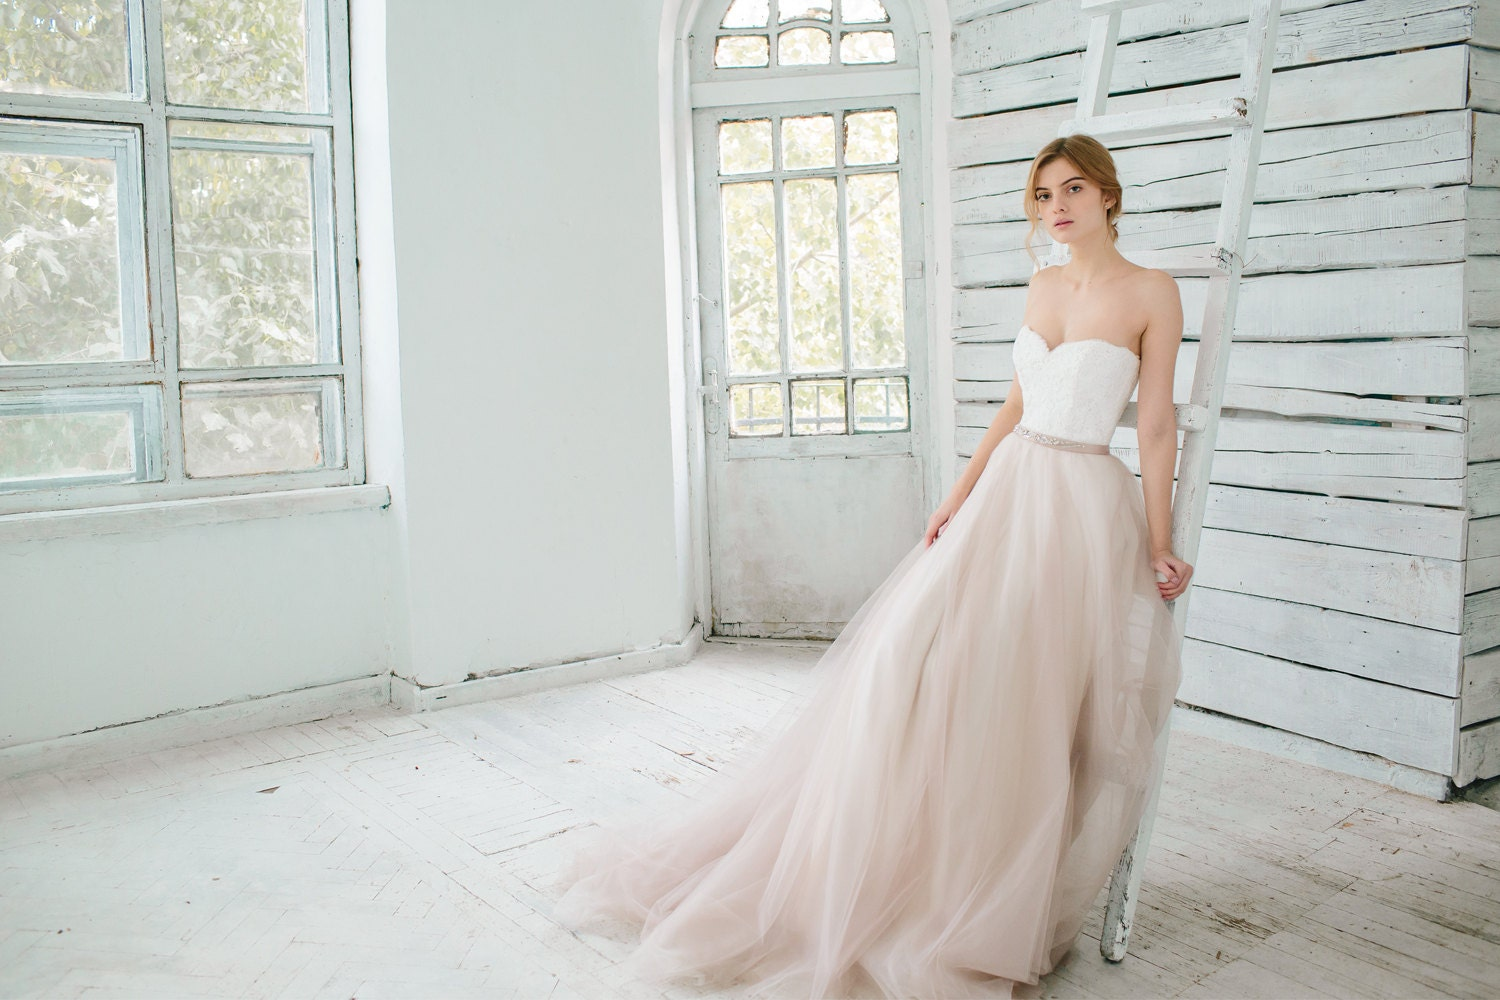 gatsby wedding dress wedding dress 2 piece Blush wedding gown Dahlia 2 pieces